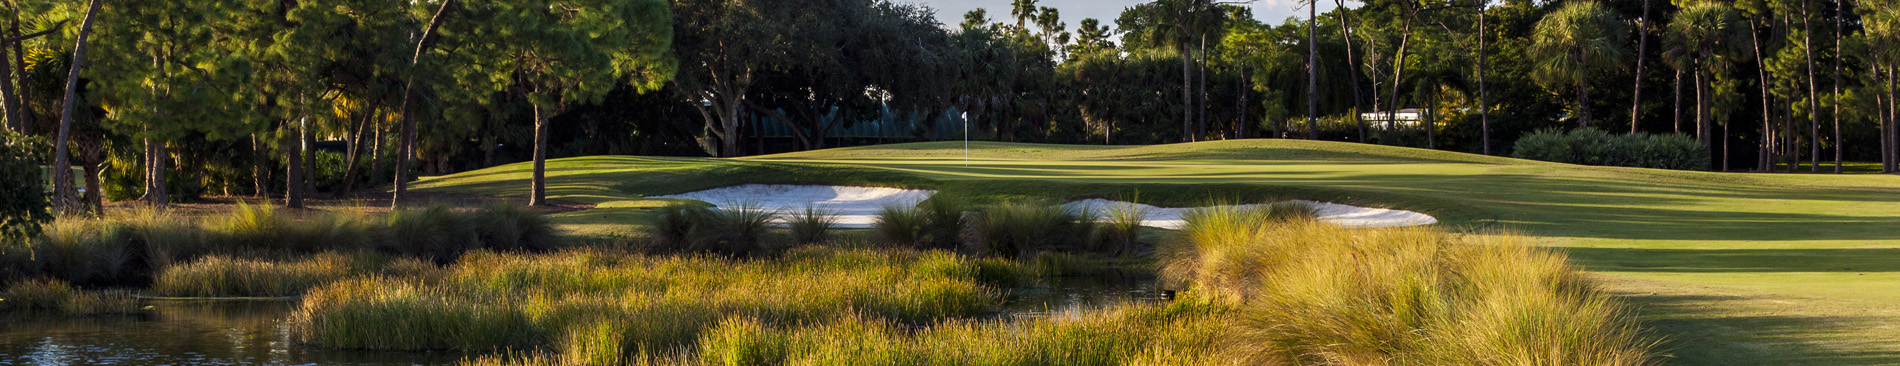 PGA National Champion Course